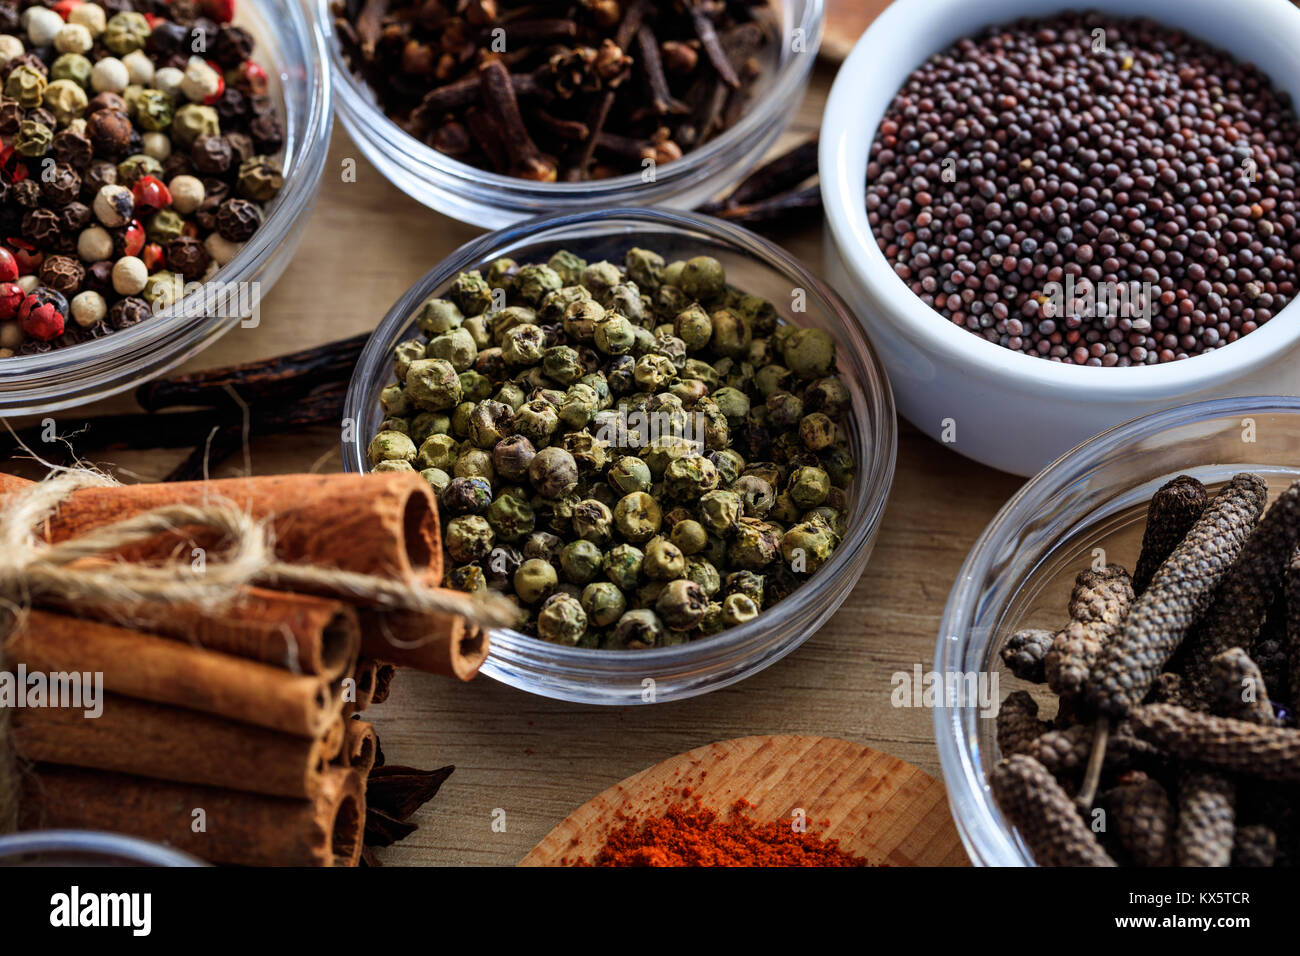 Green pepper and other spices on a wooden surface - Stock Image